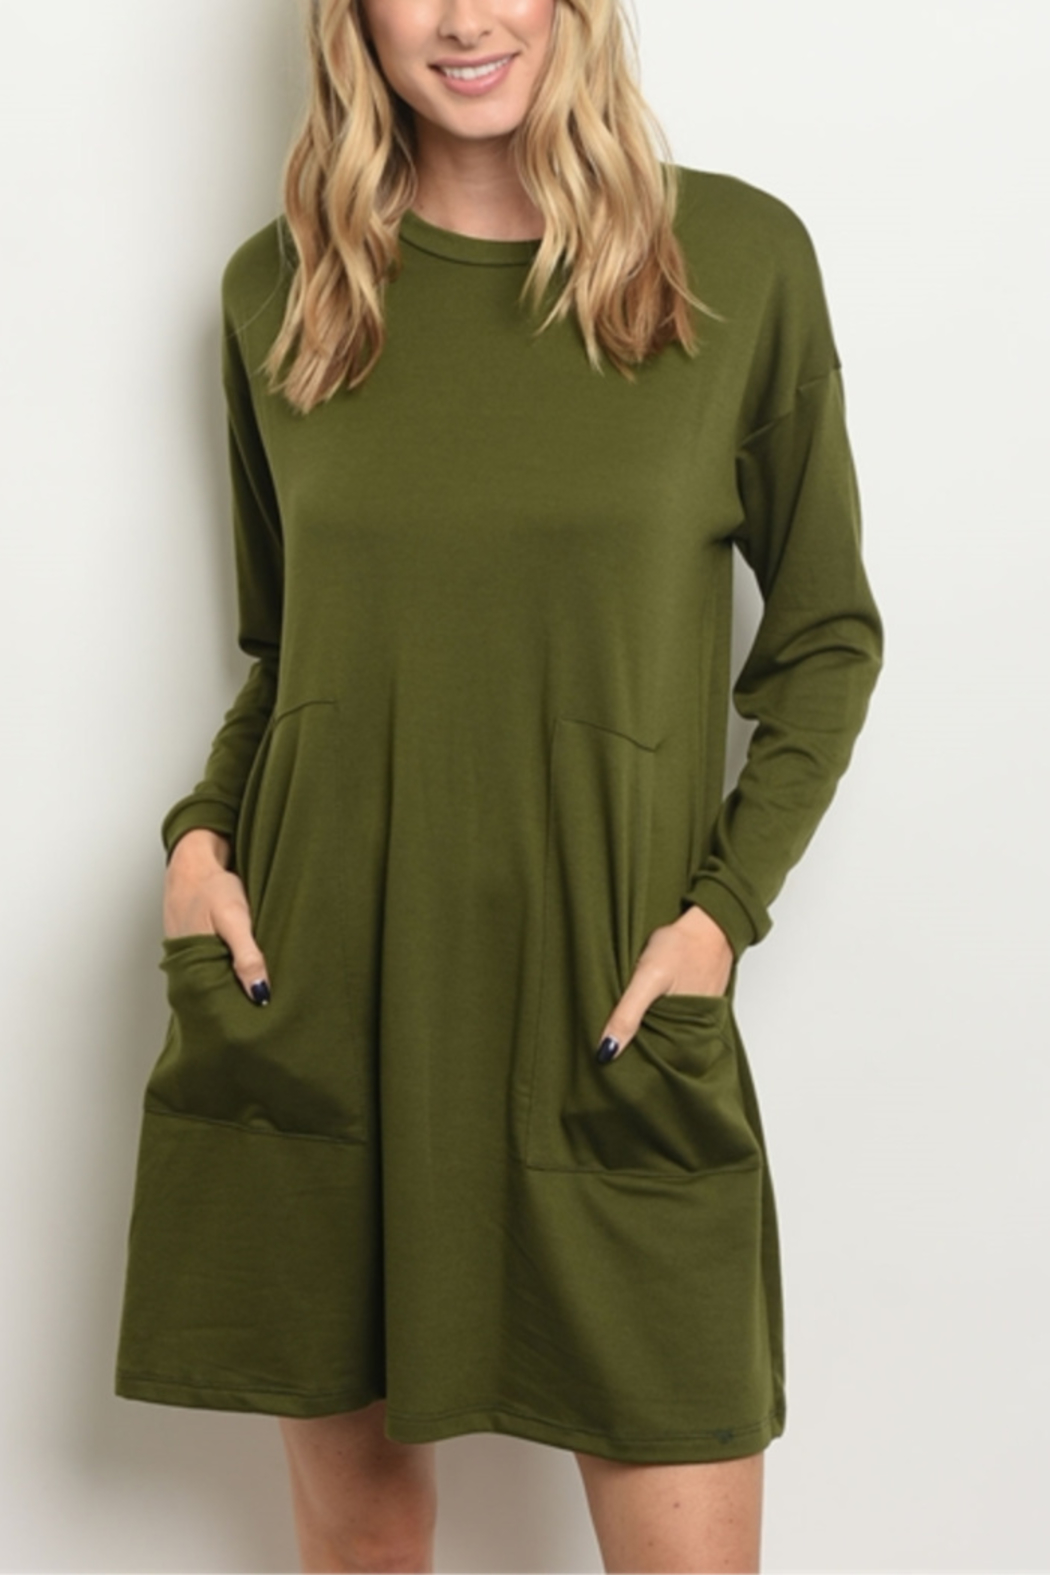 dec67f62325 LM Everyday Jersey Long Sleeve Tunic Dress from Indiana by Lyn ...